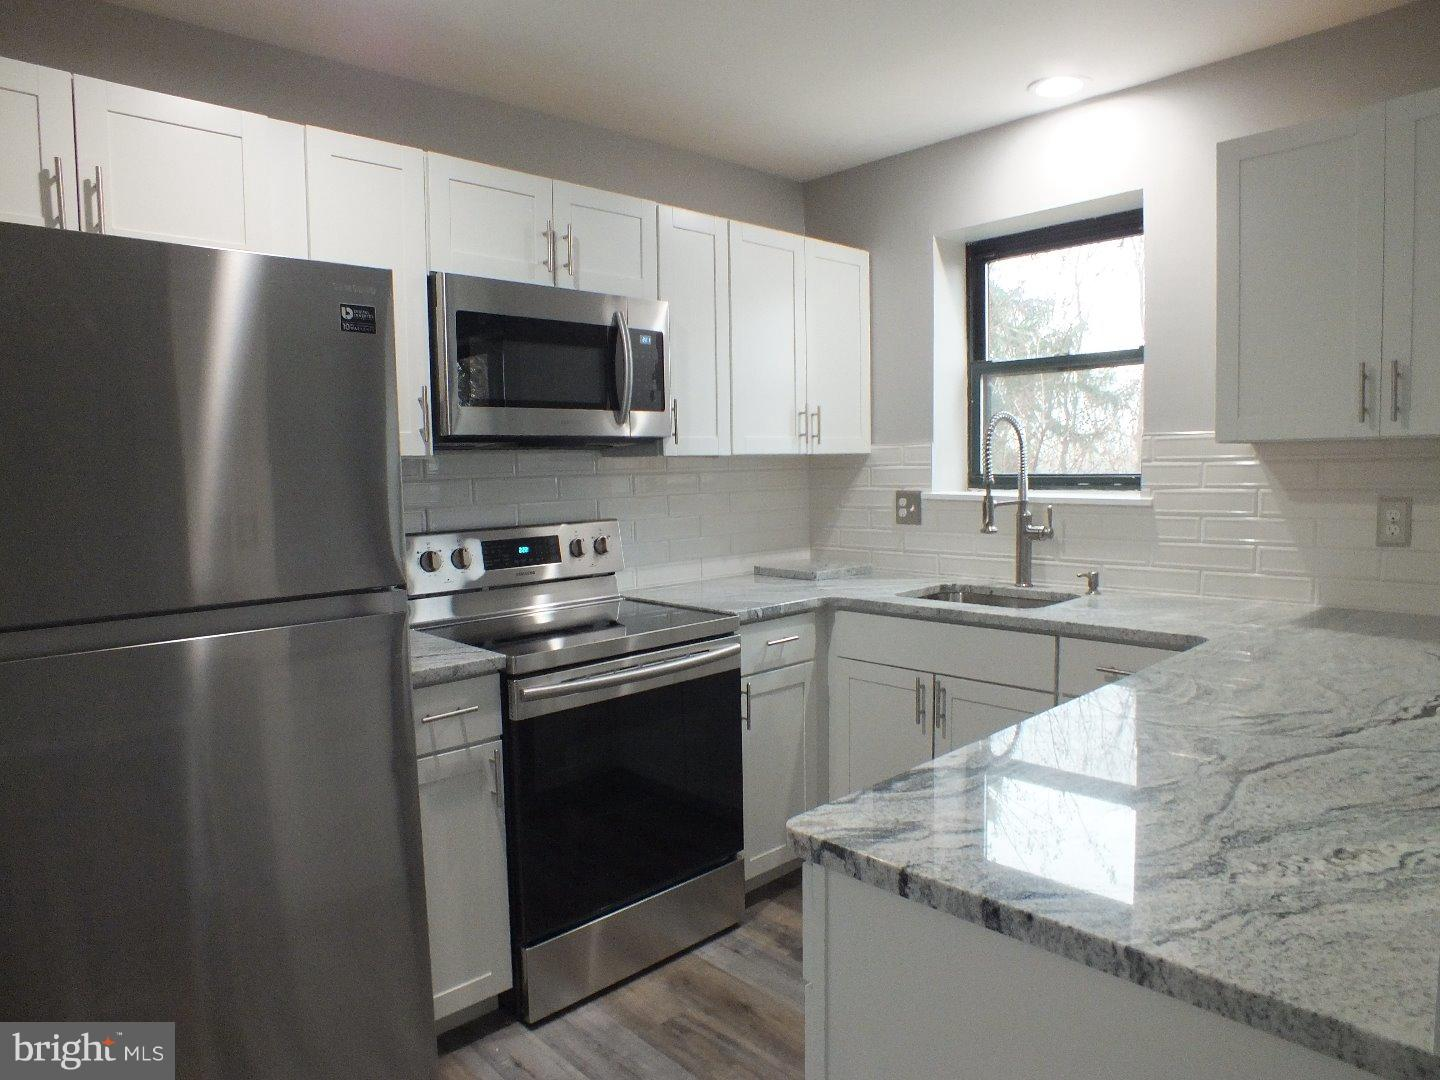 Completely renovated and move in ready 2 BR 2 Ba 2rd floor condo. Great new updates include all new